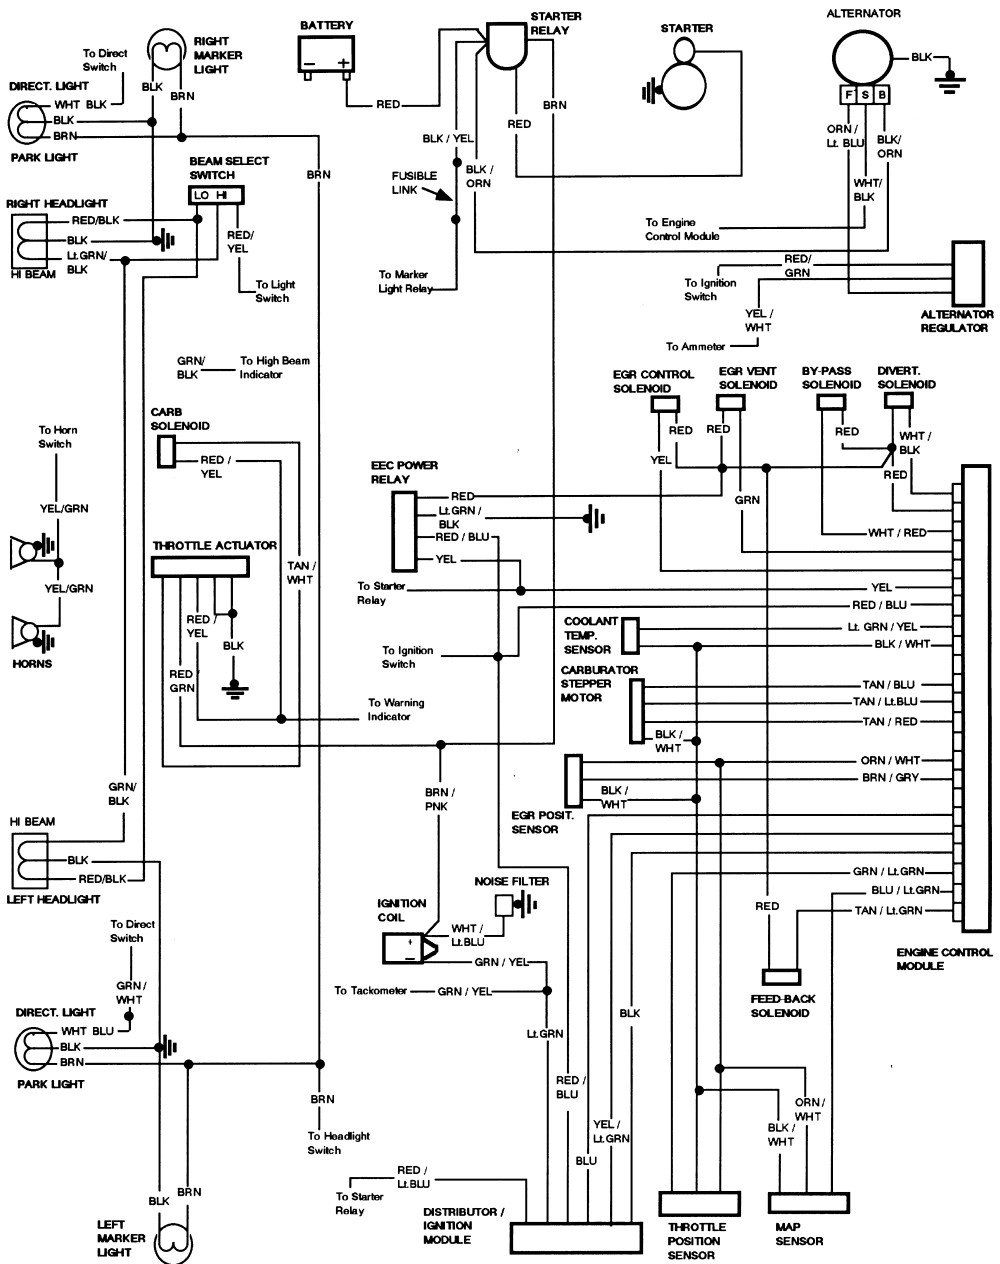 Alternator Wiring Diagram On 92 Ford F150 Alternator Wiring Diagram